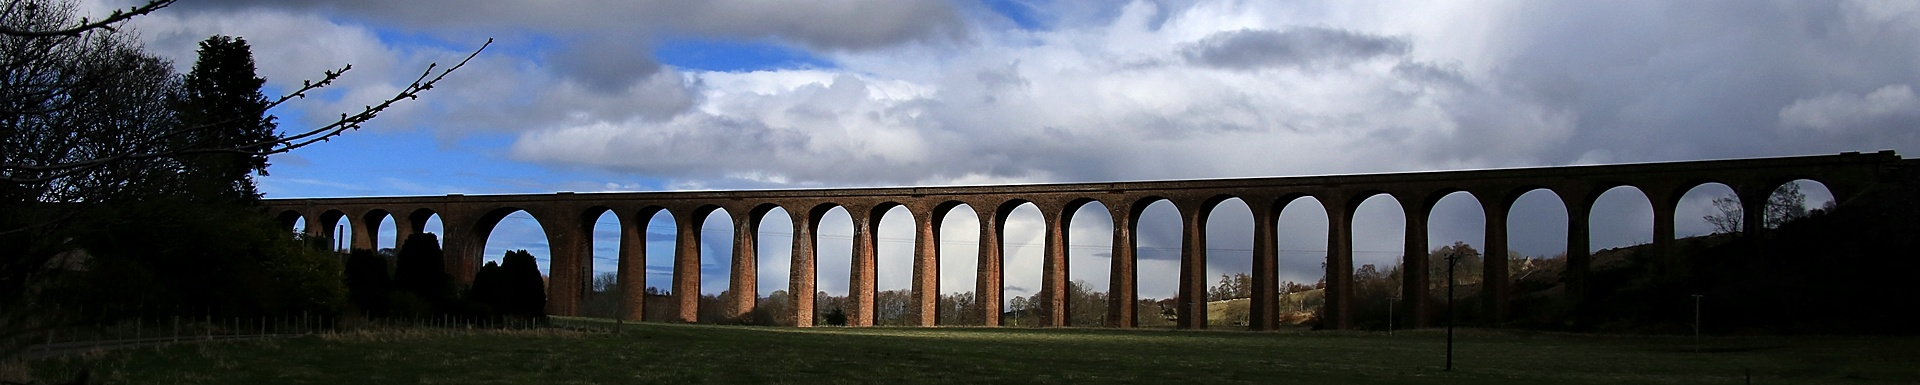 Sun rays on viaduct in Scotland (March 2016)